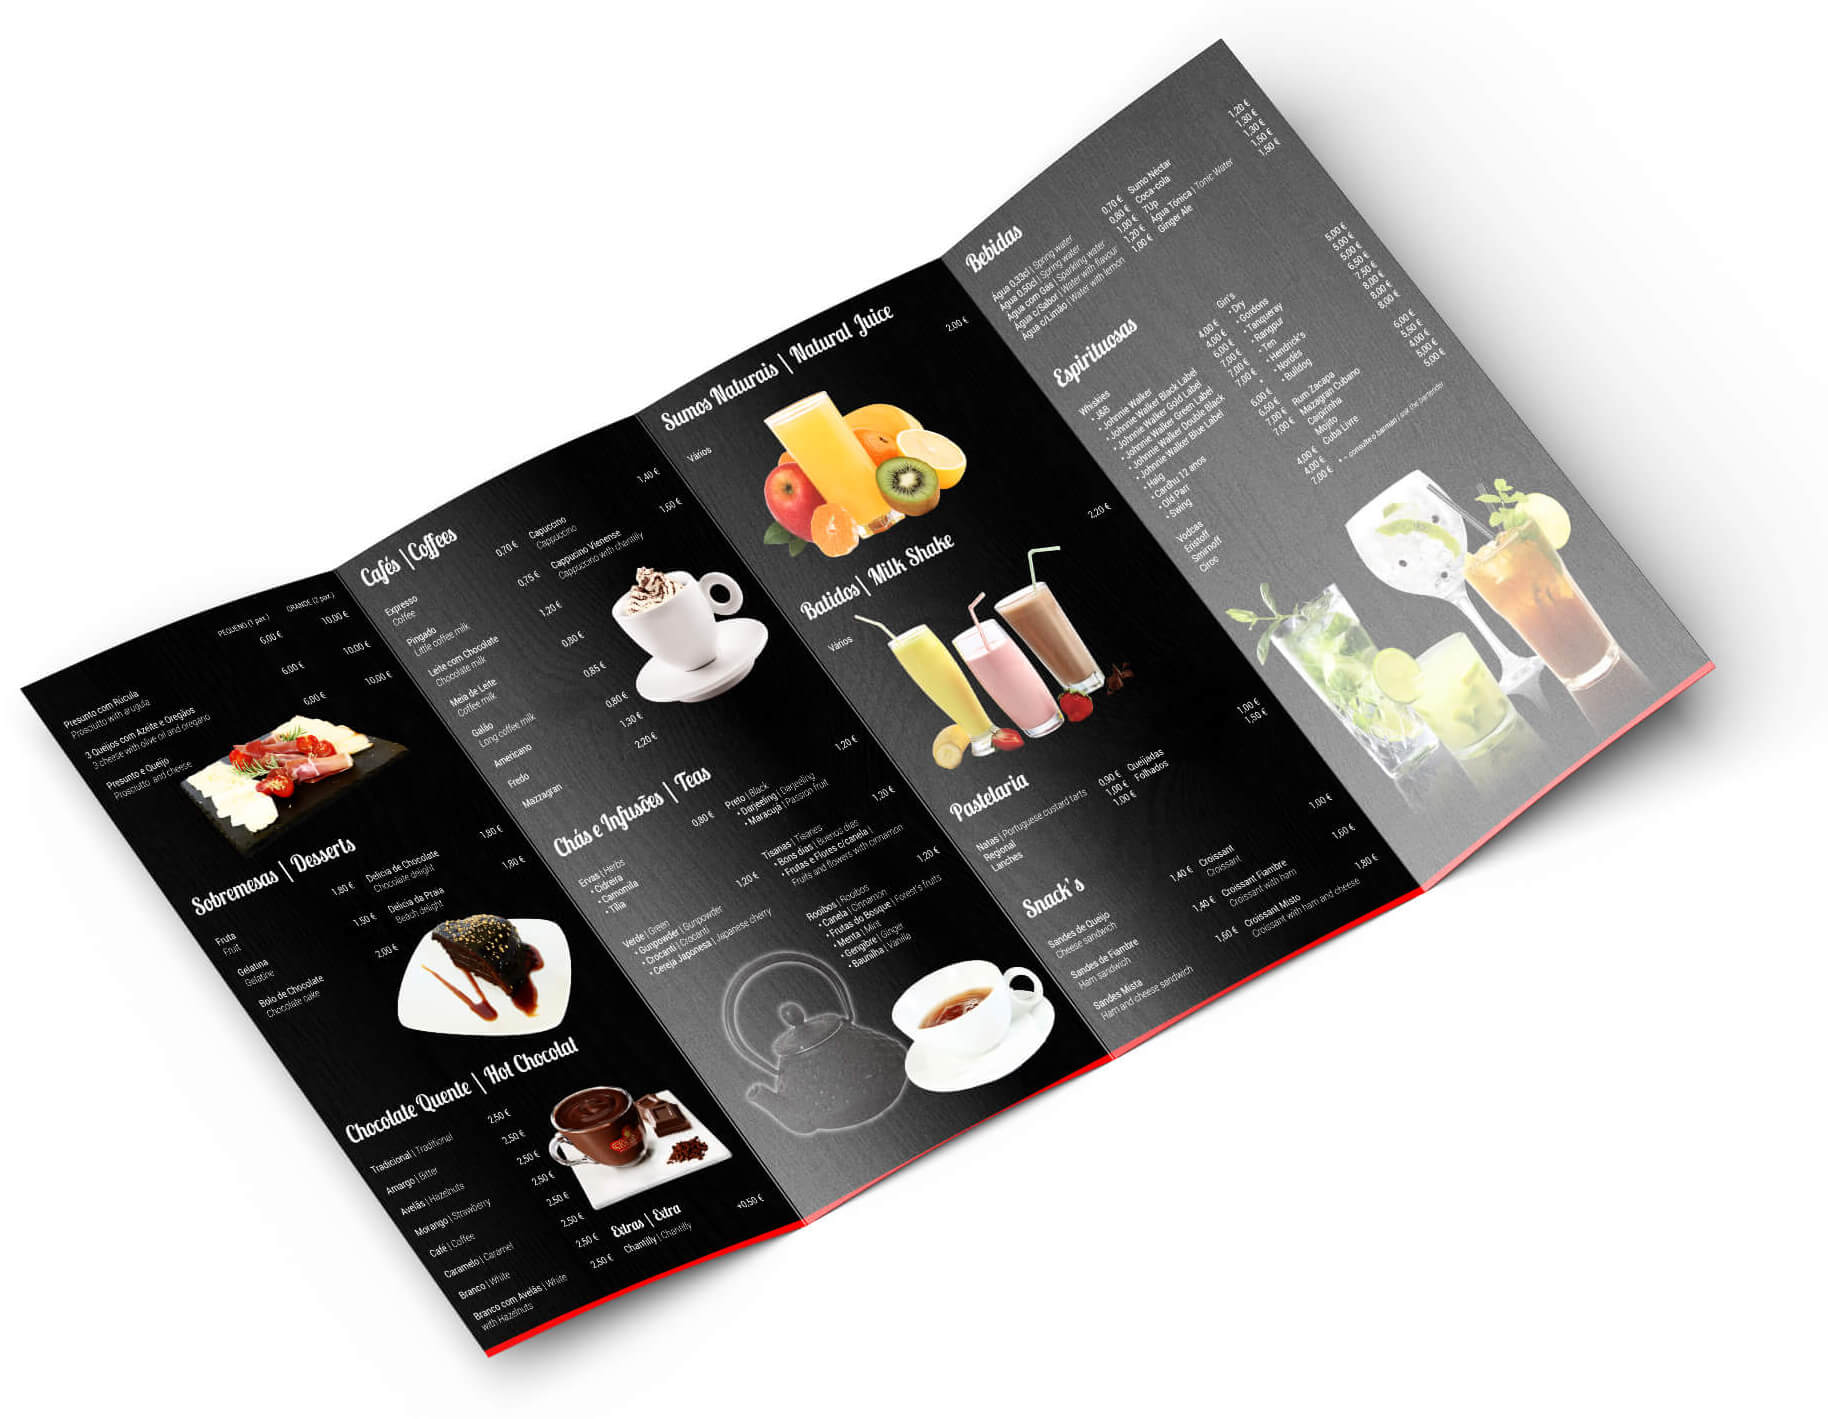 Café Sebastian Bar - Menu Mockup | Way2Start - Design & Digital Agency